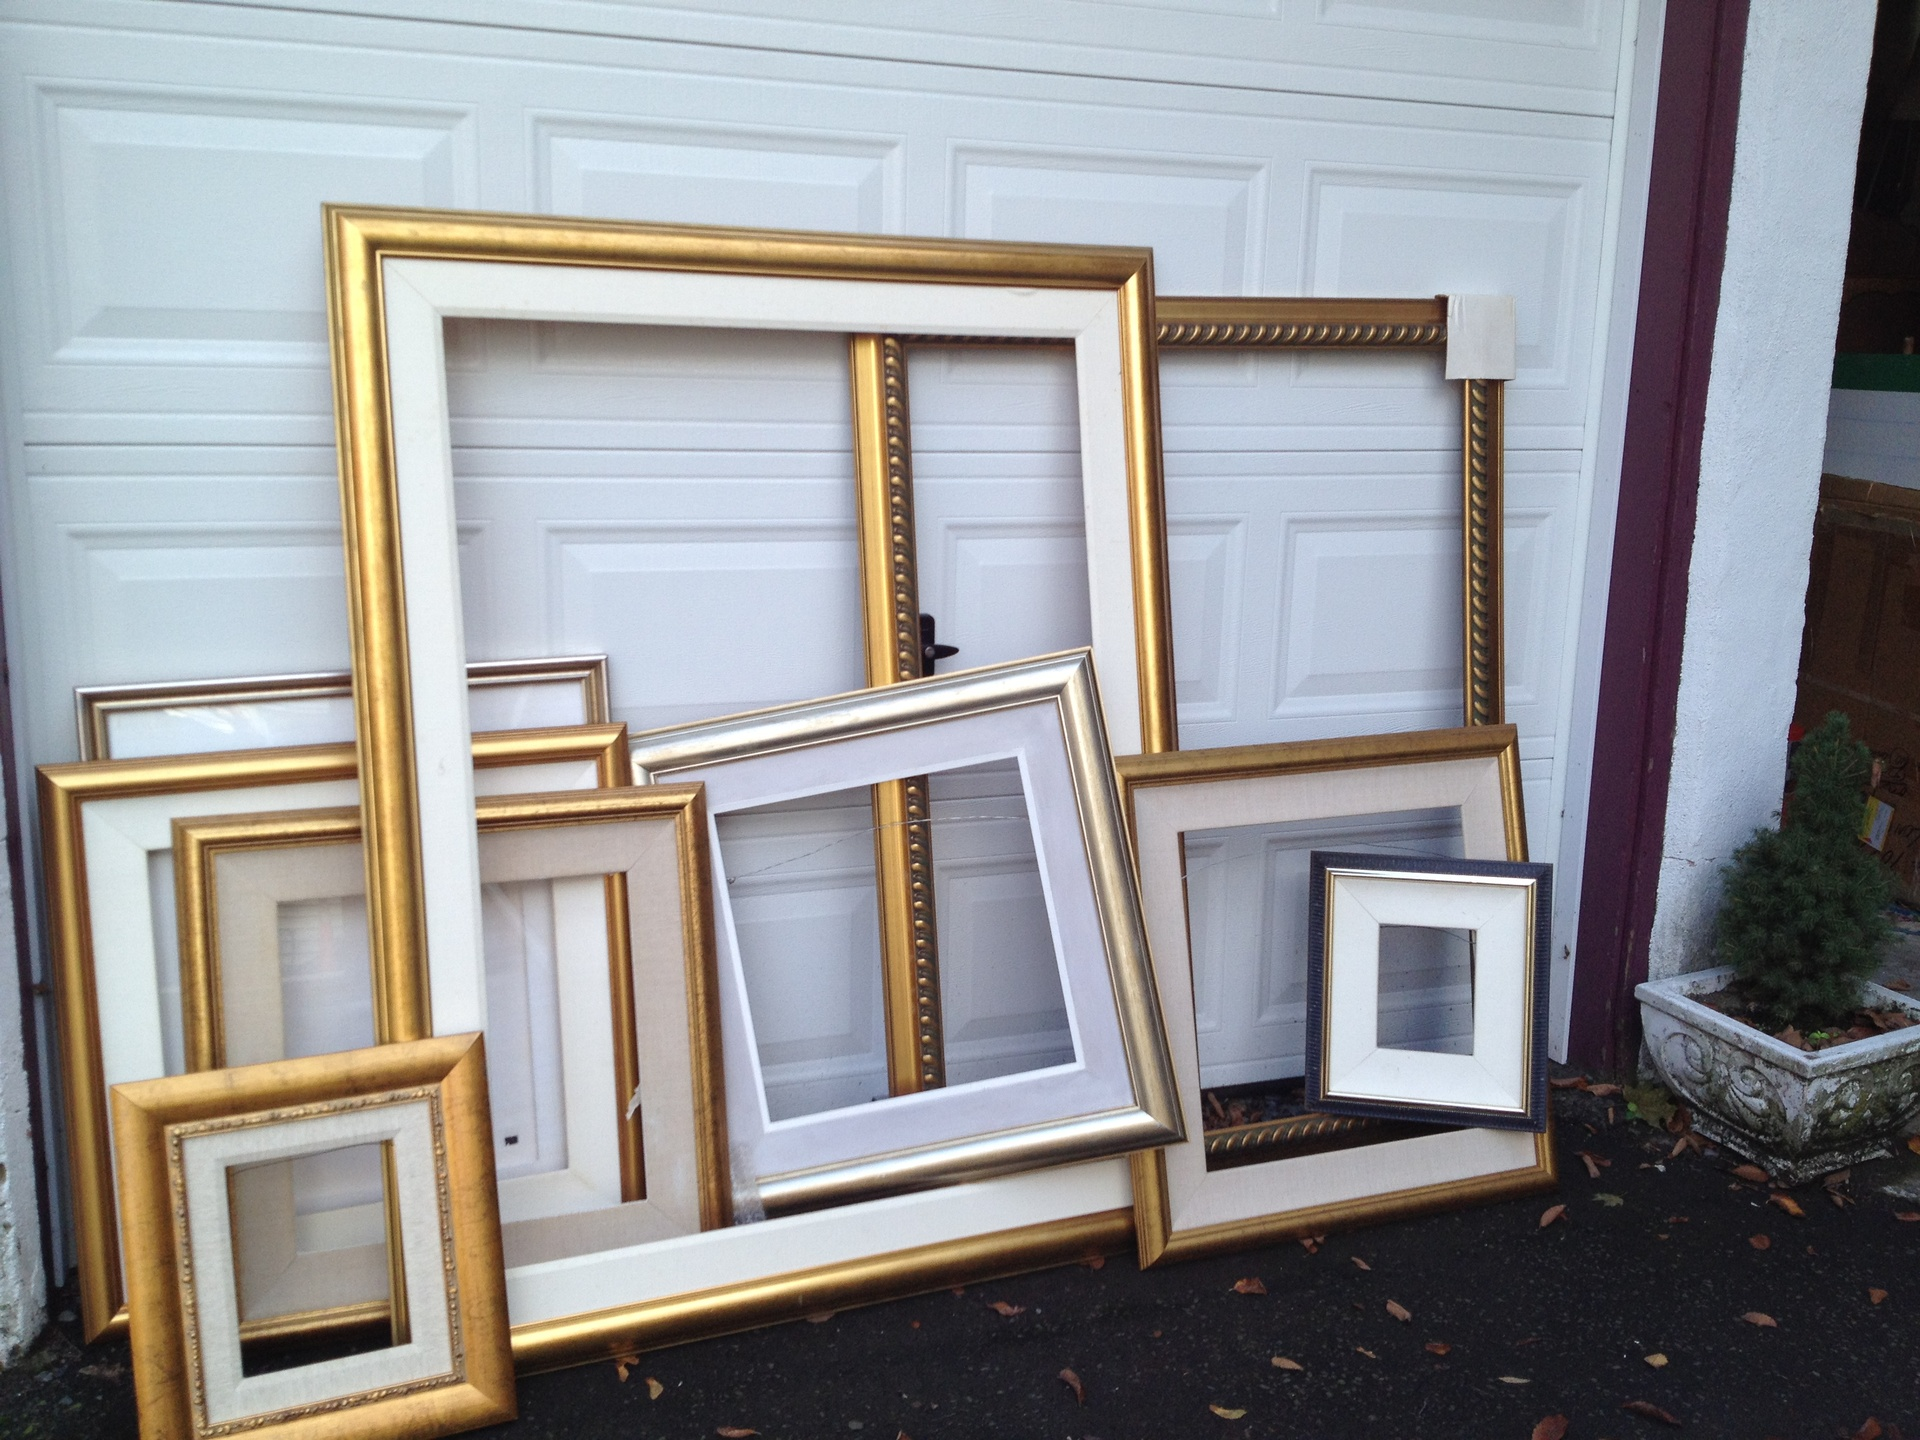 Oodles of Frames